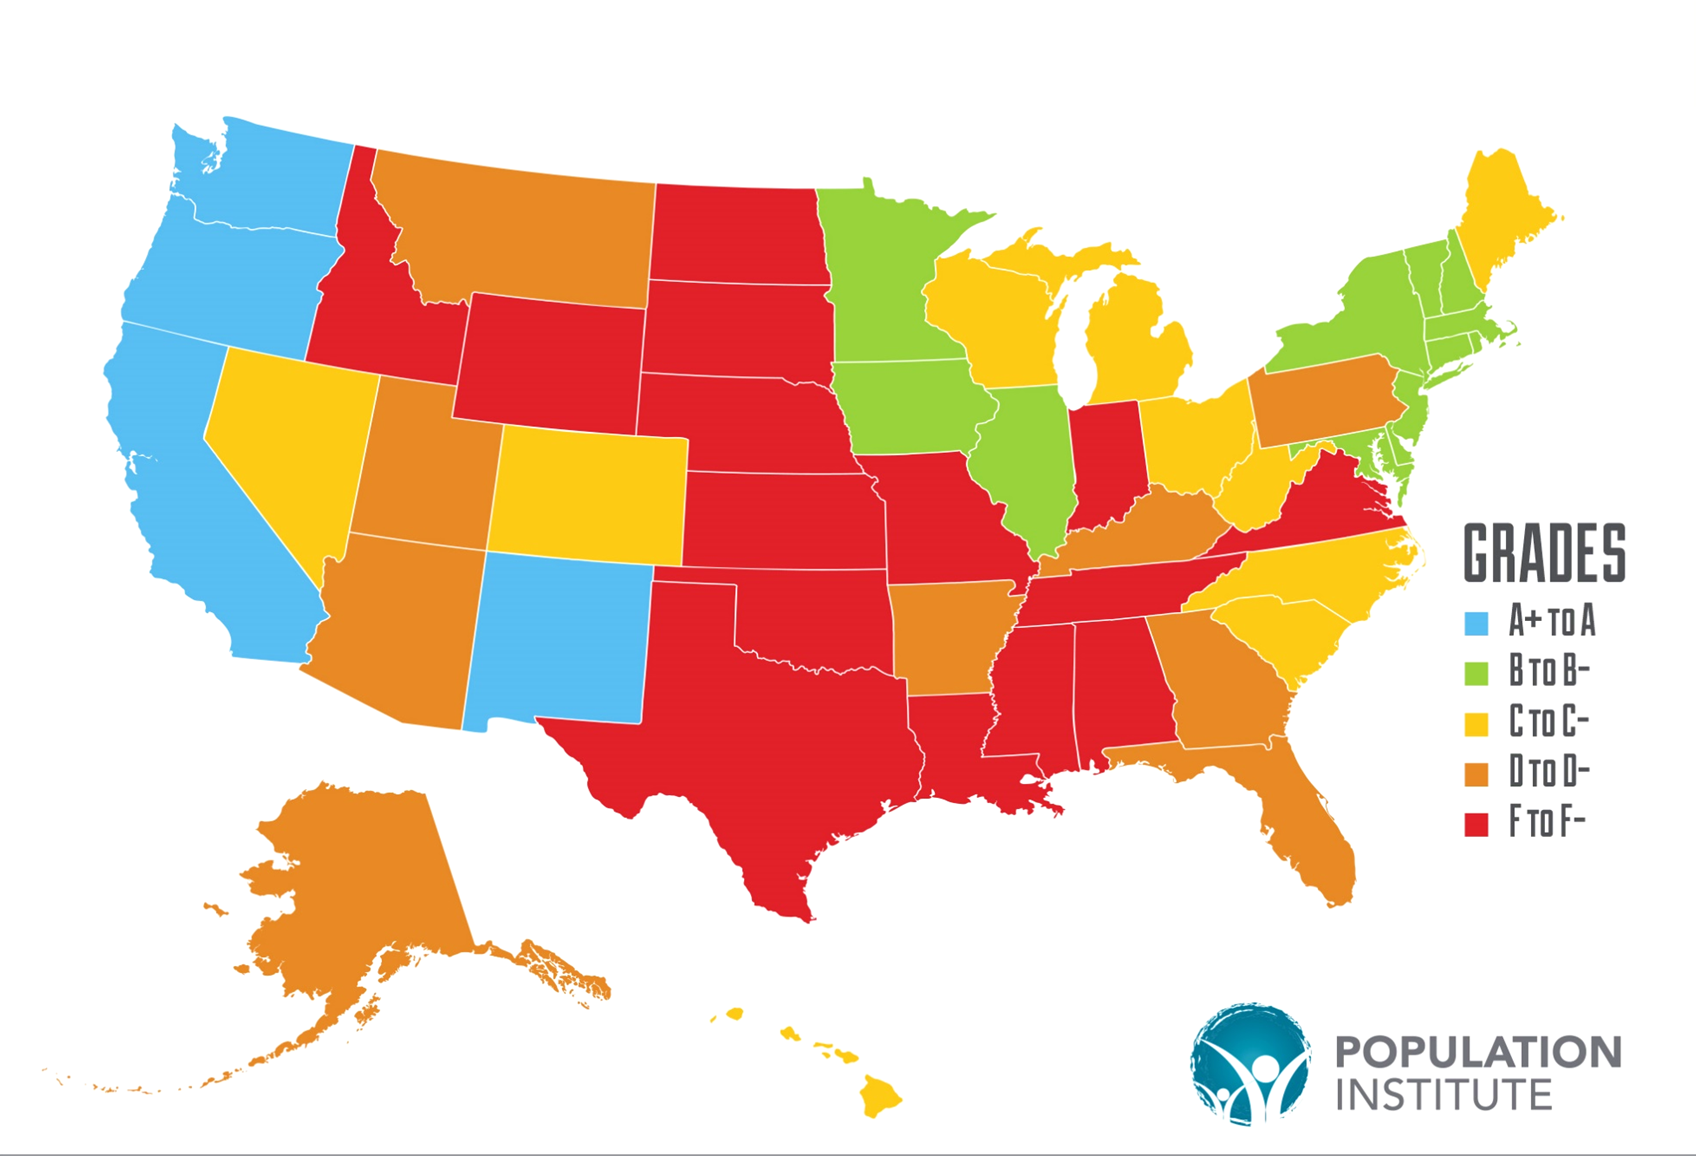 Map showing 50 US states colored according to reproductive health grades.